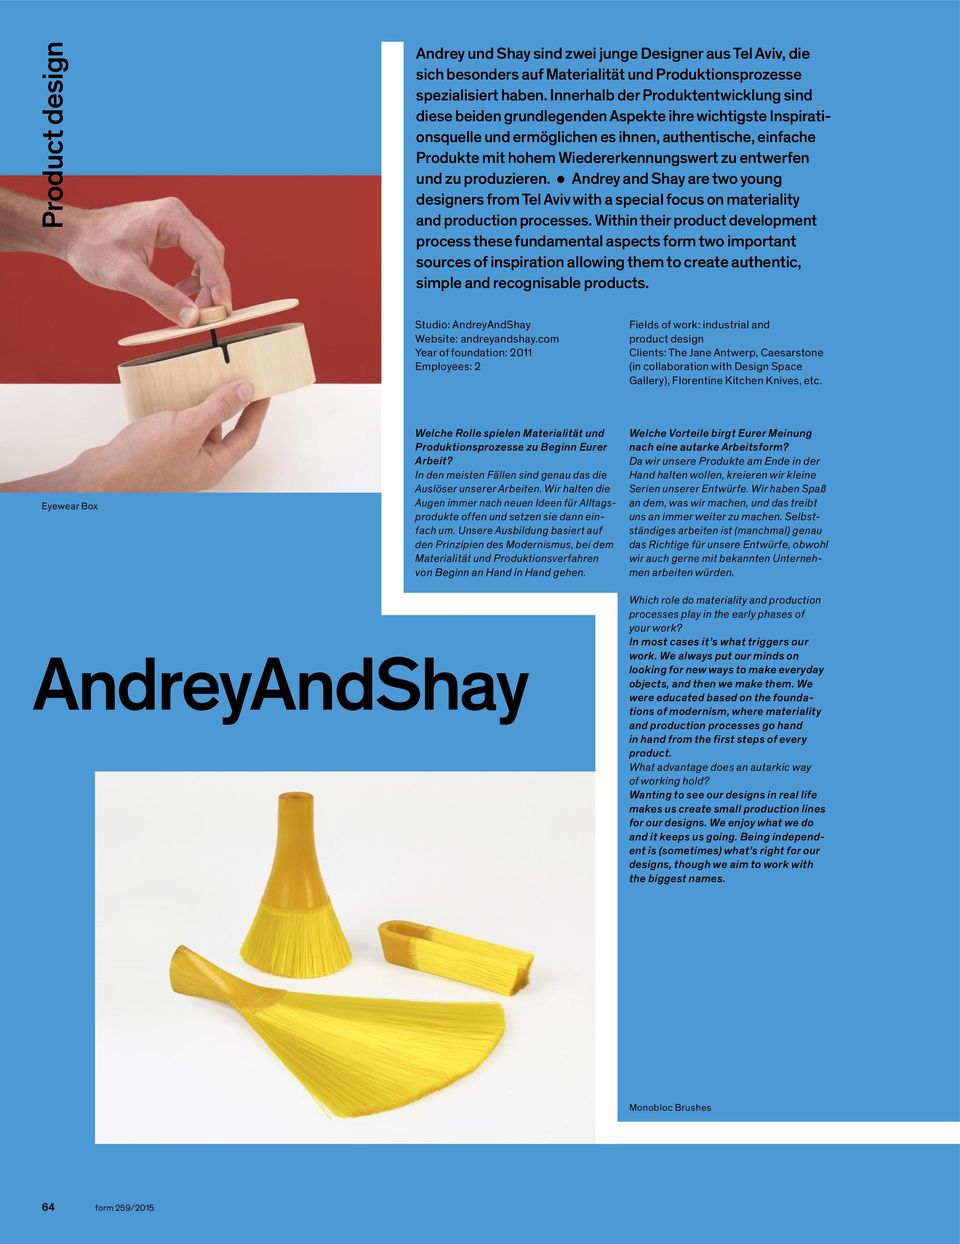 entwerfen und zu produzieren. Andrey and Shay are two young designers from with a special focus on materiality and production processes.